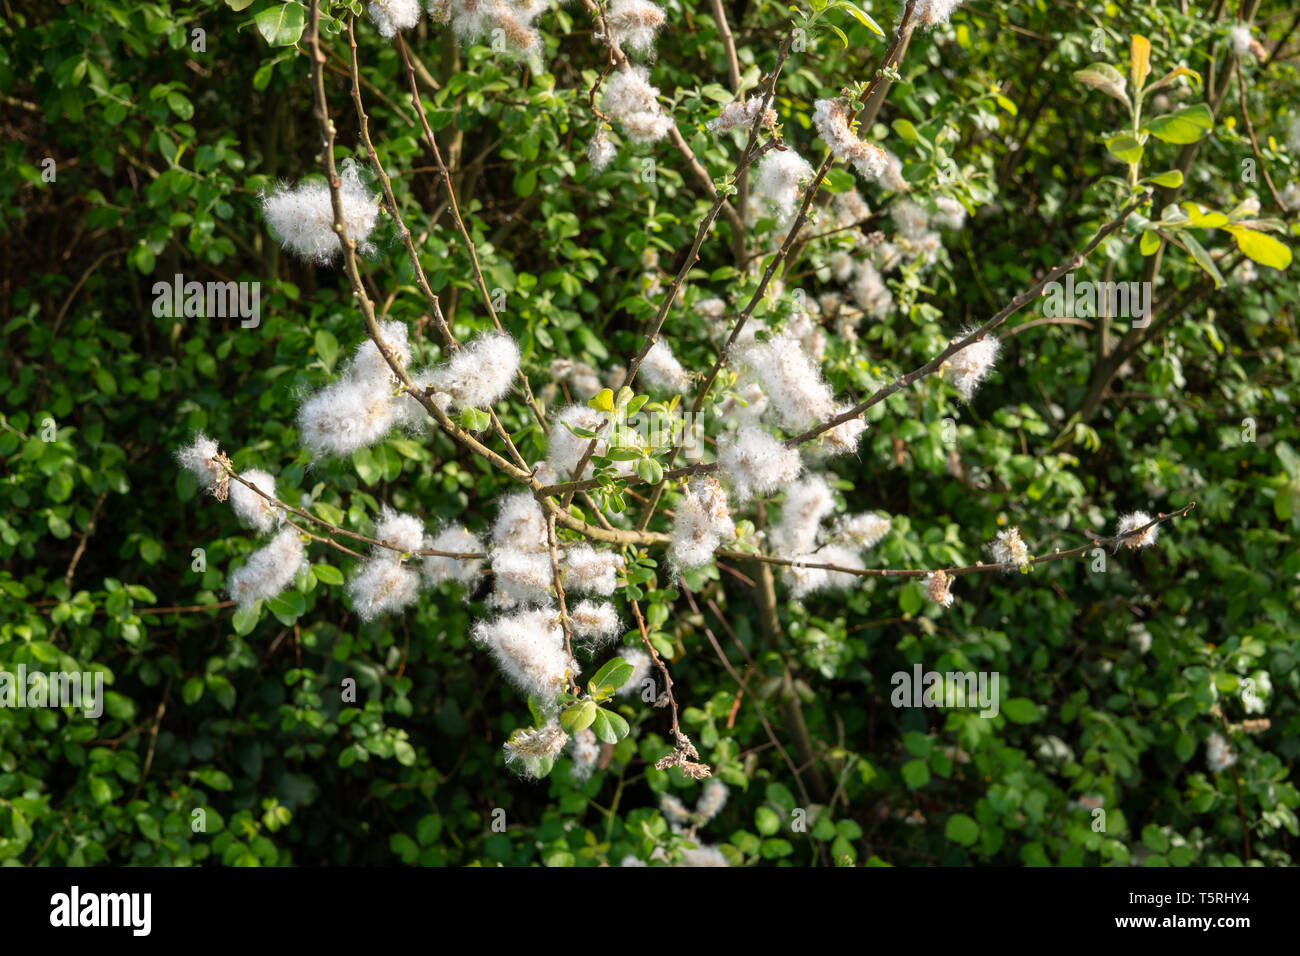 Blooming gramineae on springtime. Allergy concept - Stock Image